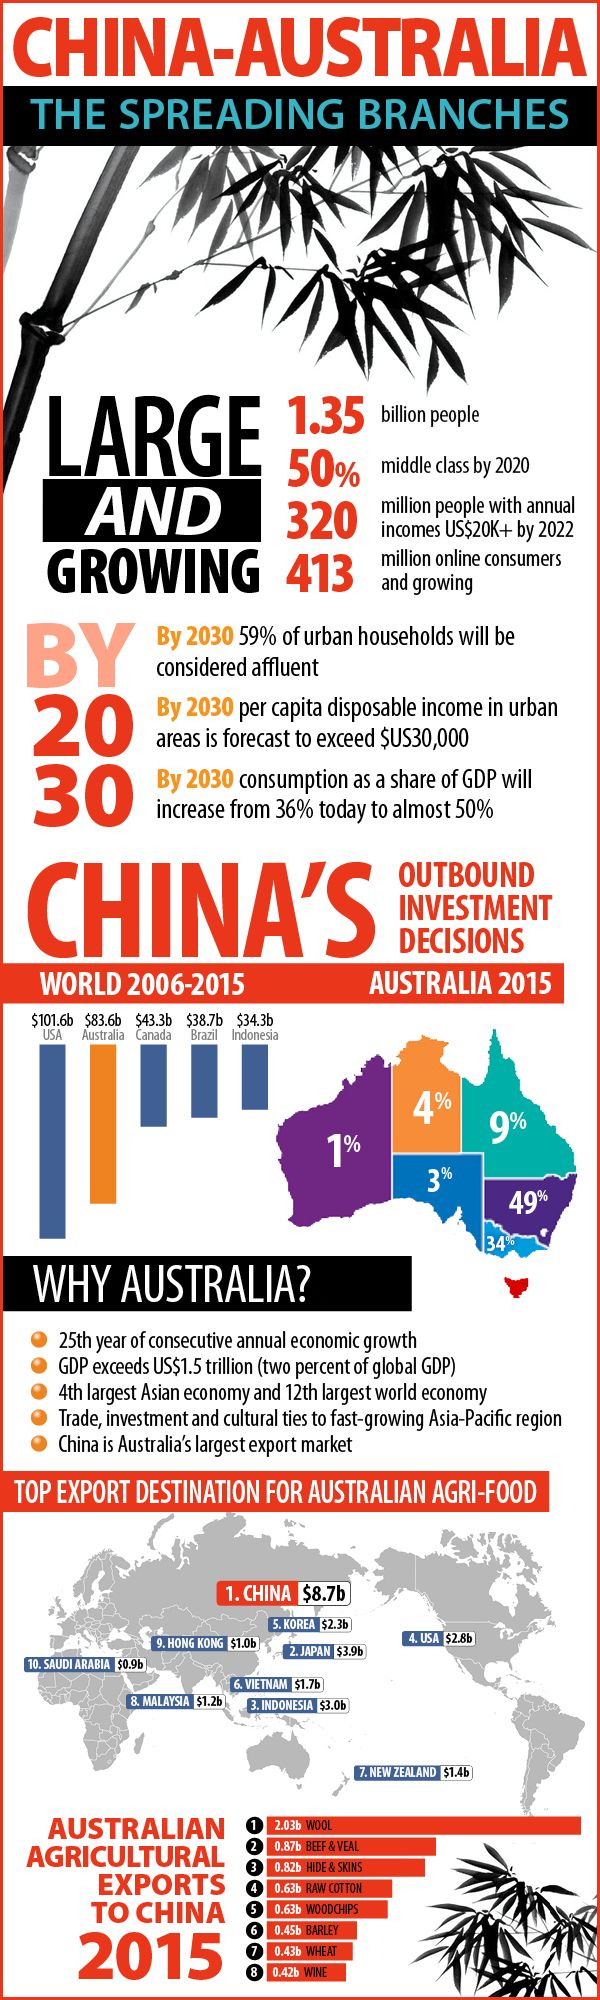 Chine Australia: The Spreading Branches